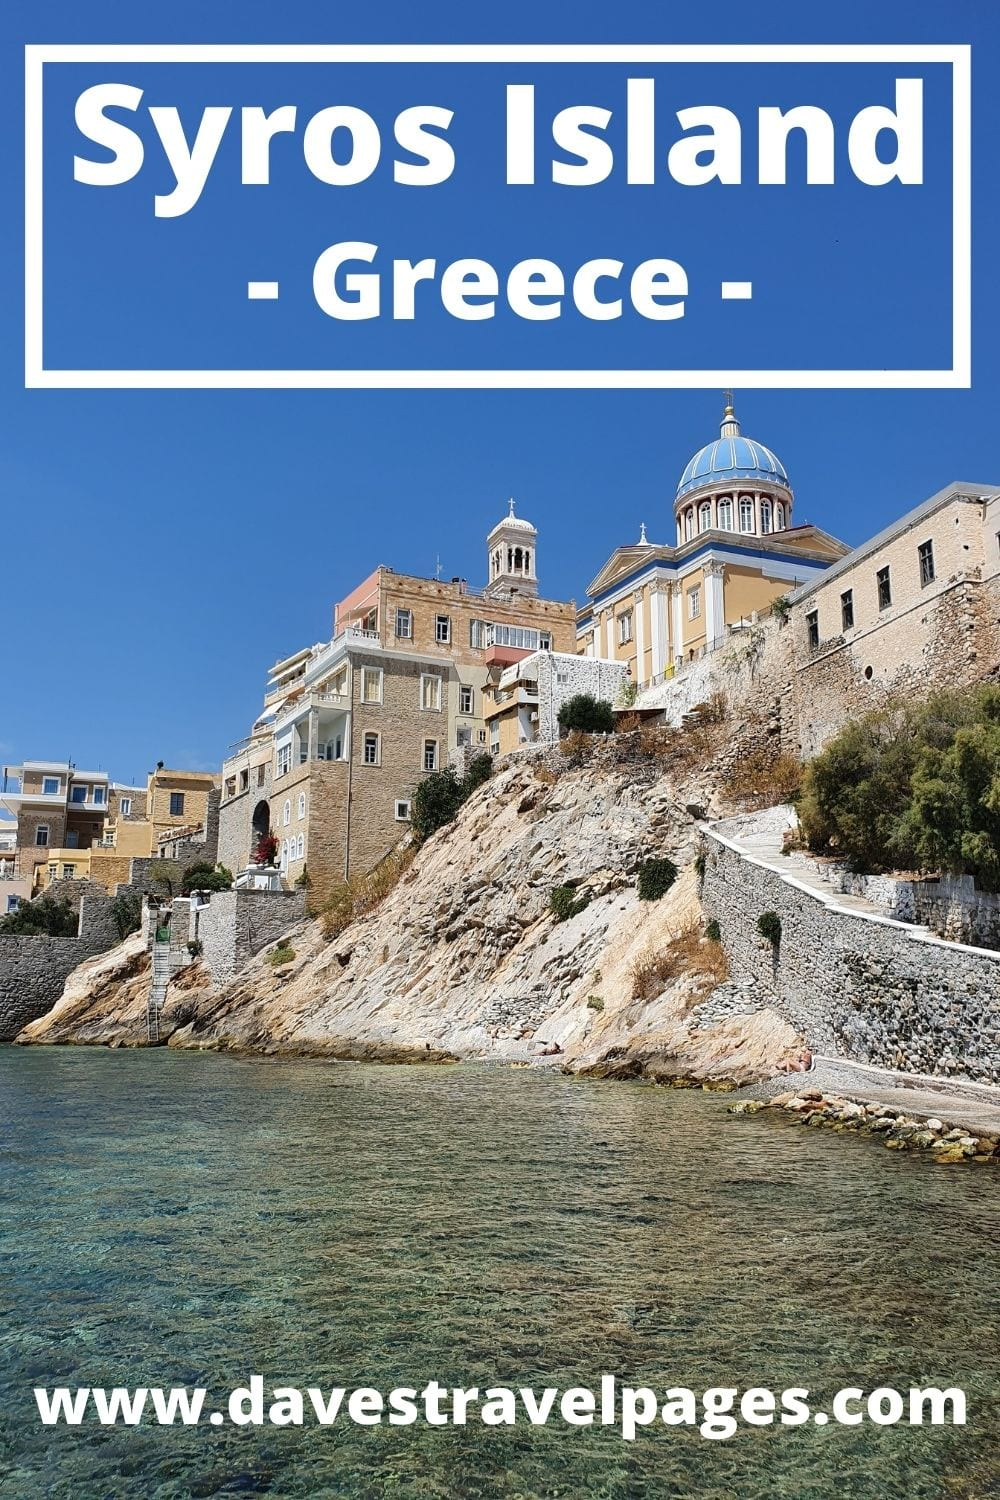 How to take the ferry from Athens to Syros